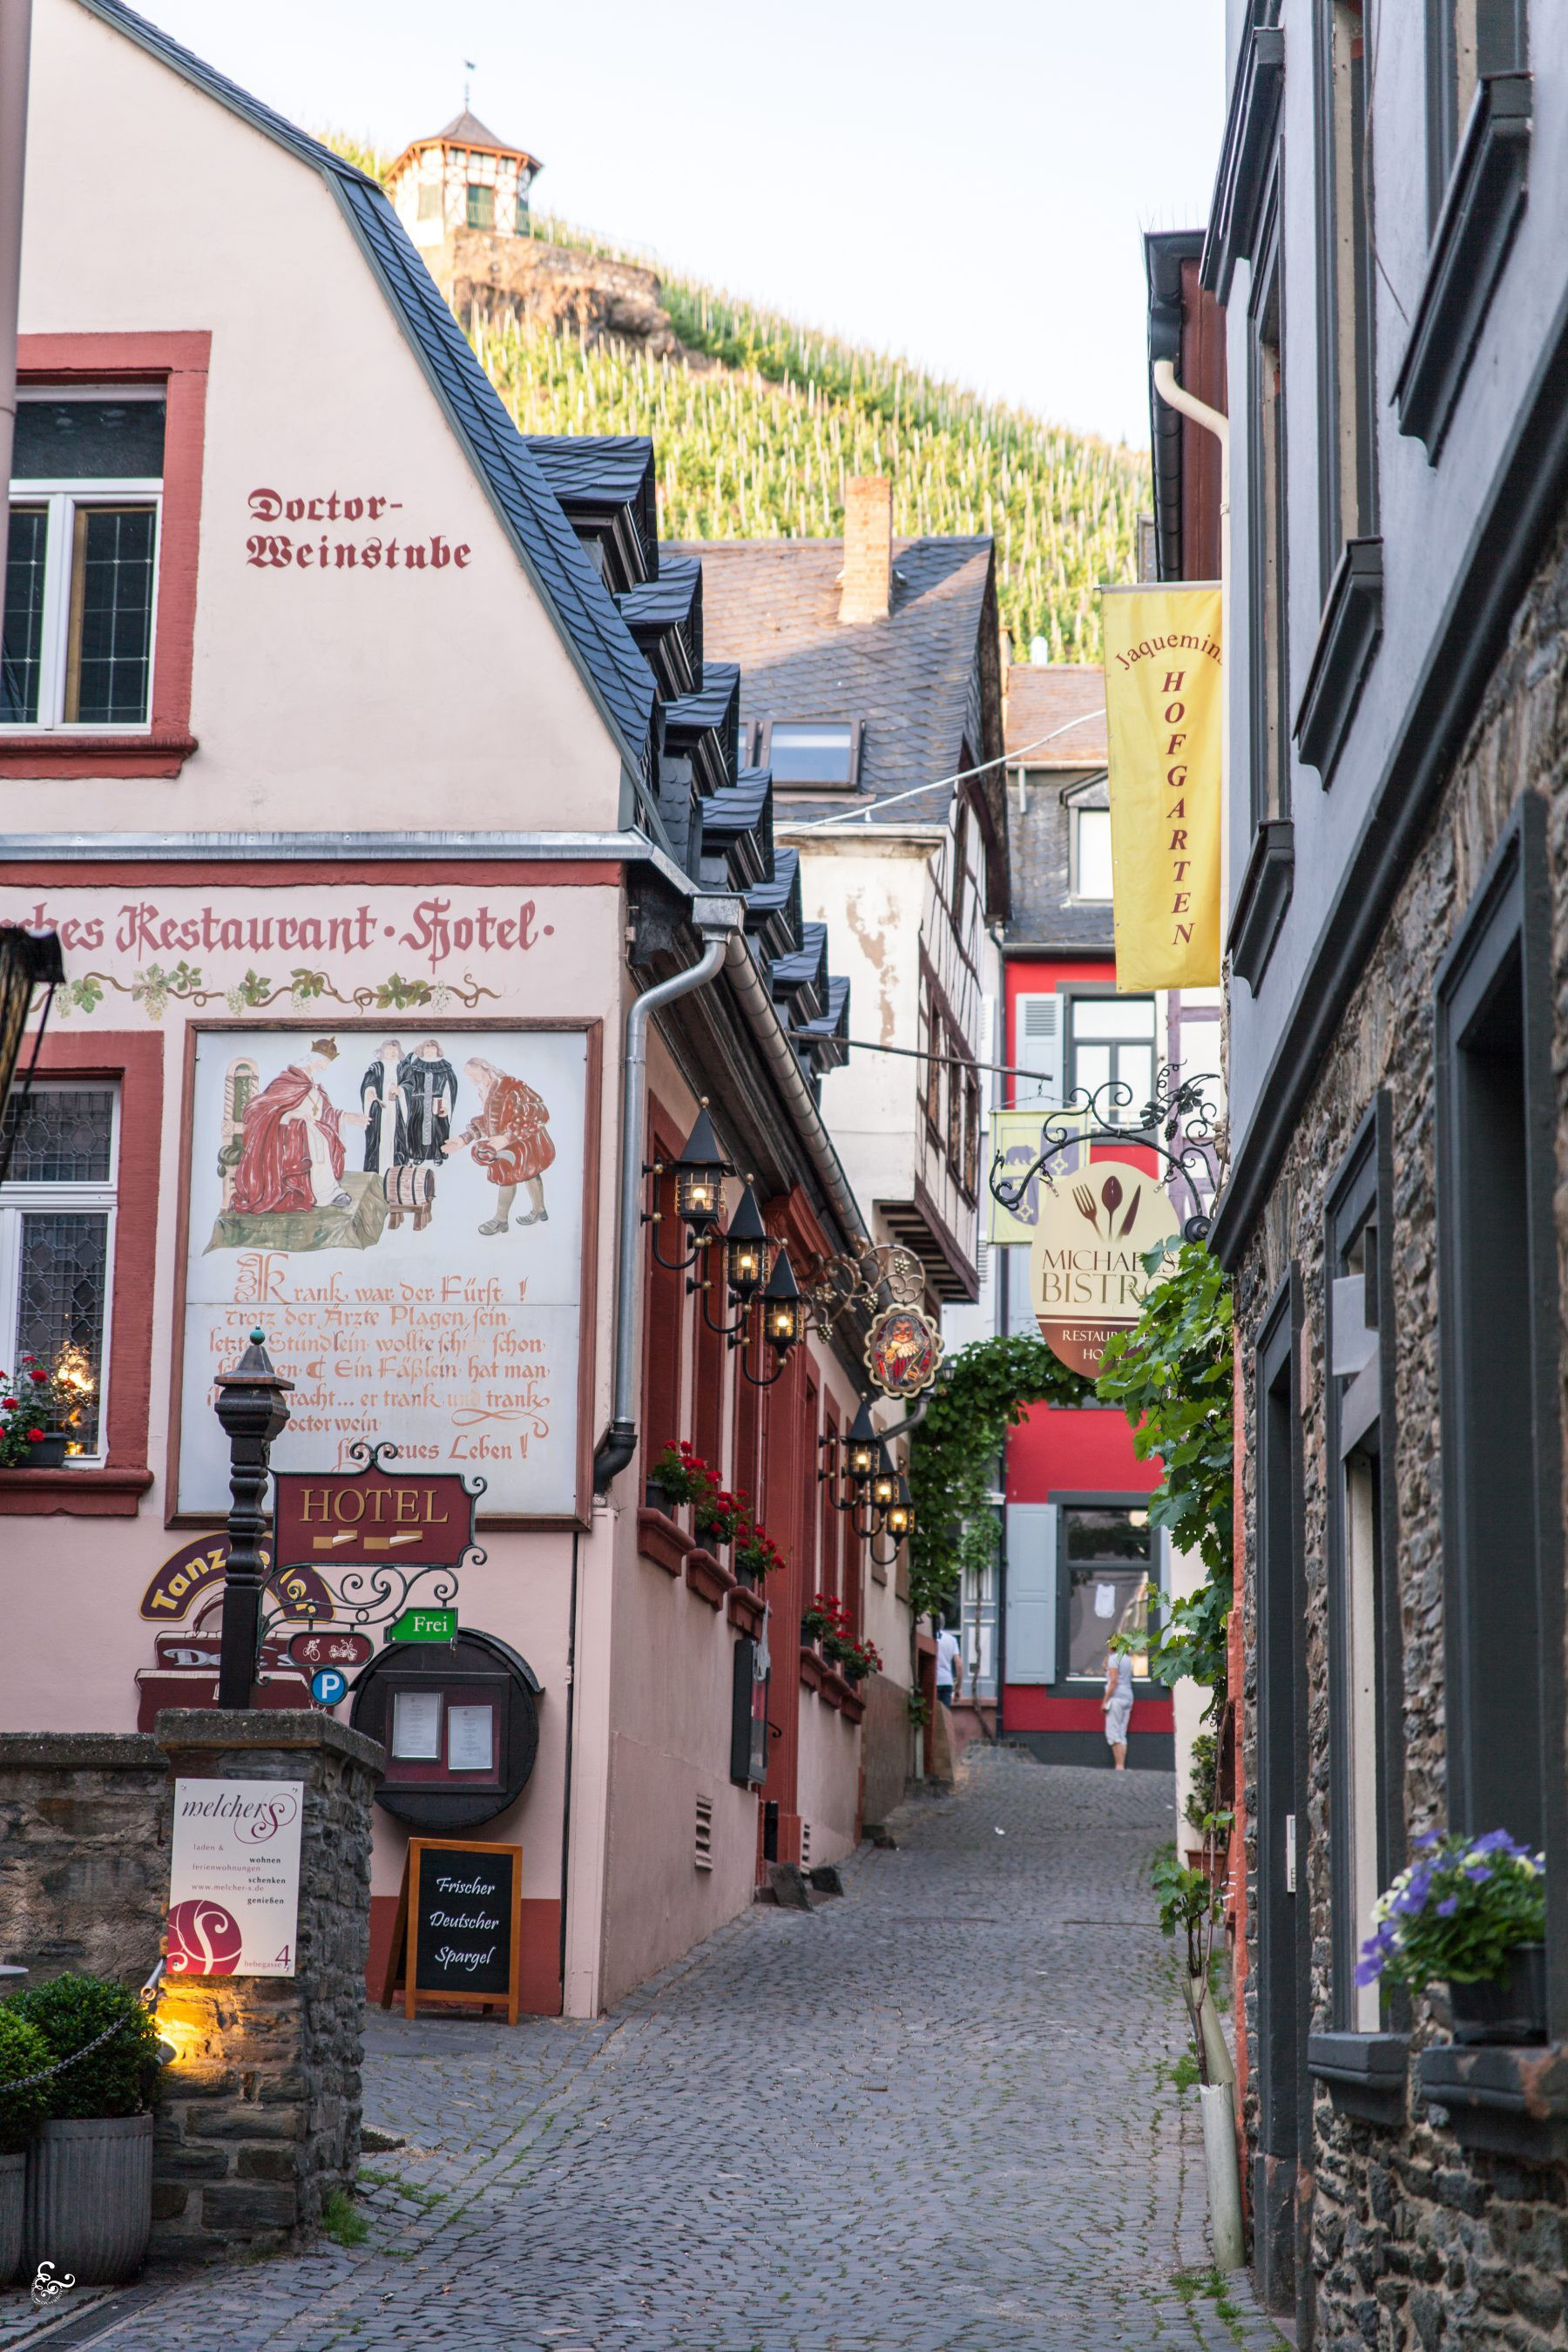 Bernkastel-Keus Moselle River Riveira Germany Deutschland Nowhere & Everywhere Lis Dingjan Free Range Pixels Travel Photography Germany Instagram